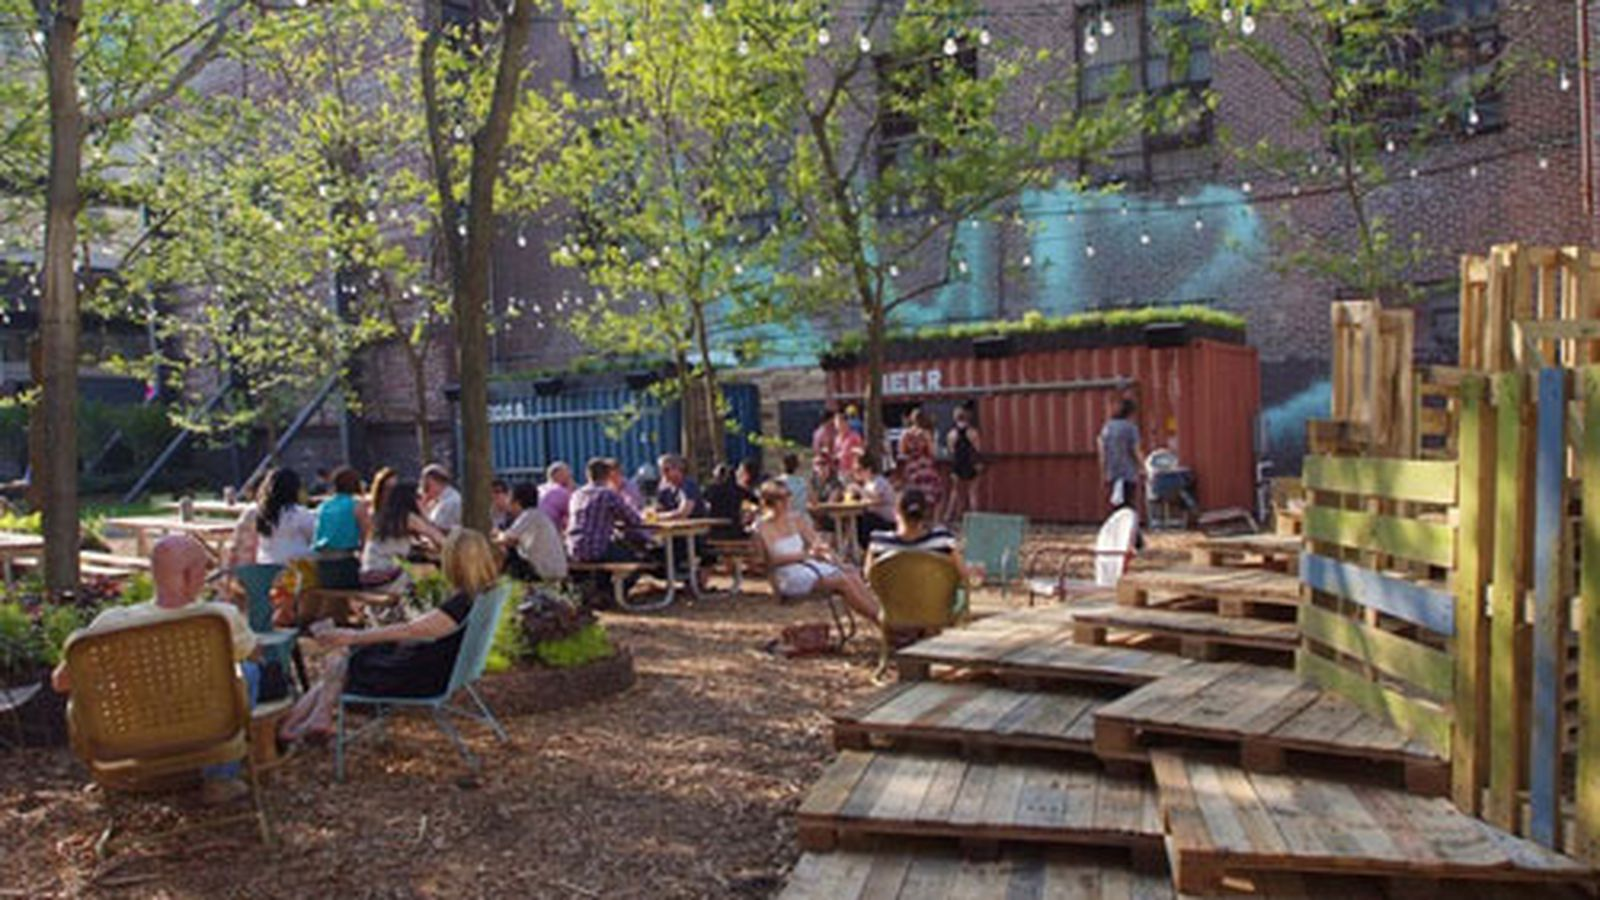 Independence beer garden coming in july eater philly Independence beer garden philadelphia pa